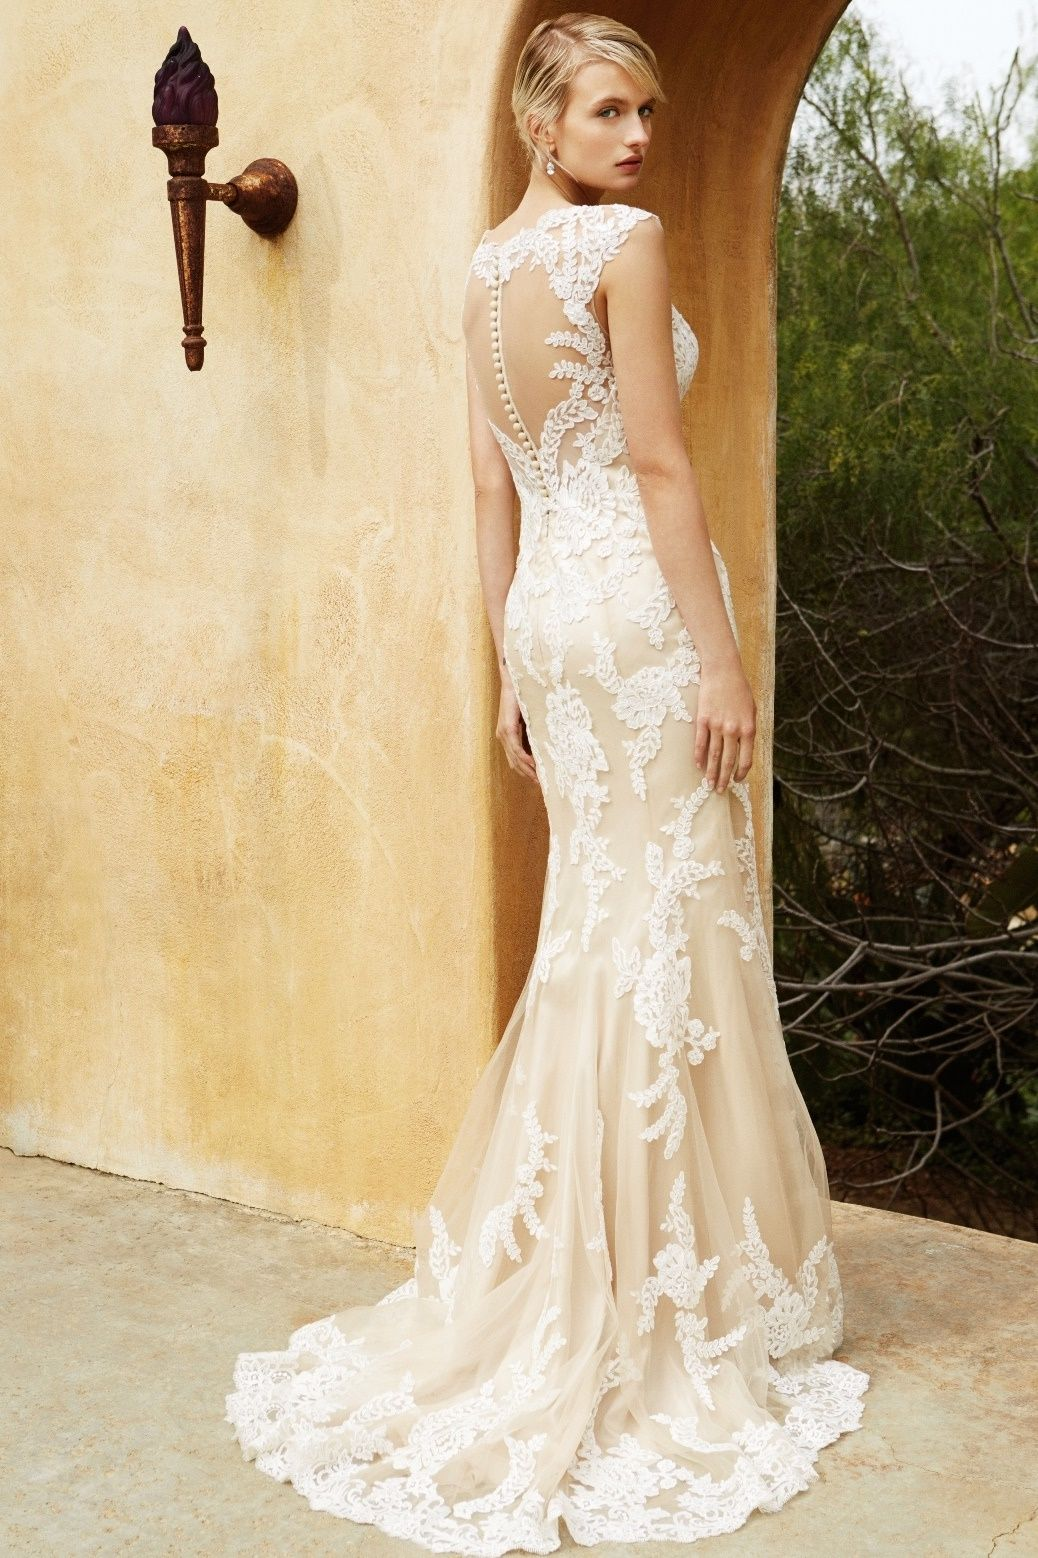 BT16-4 back view - at Sposabella Bridal Gowns Durban The picture of ...